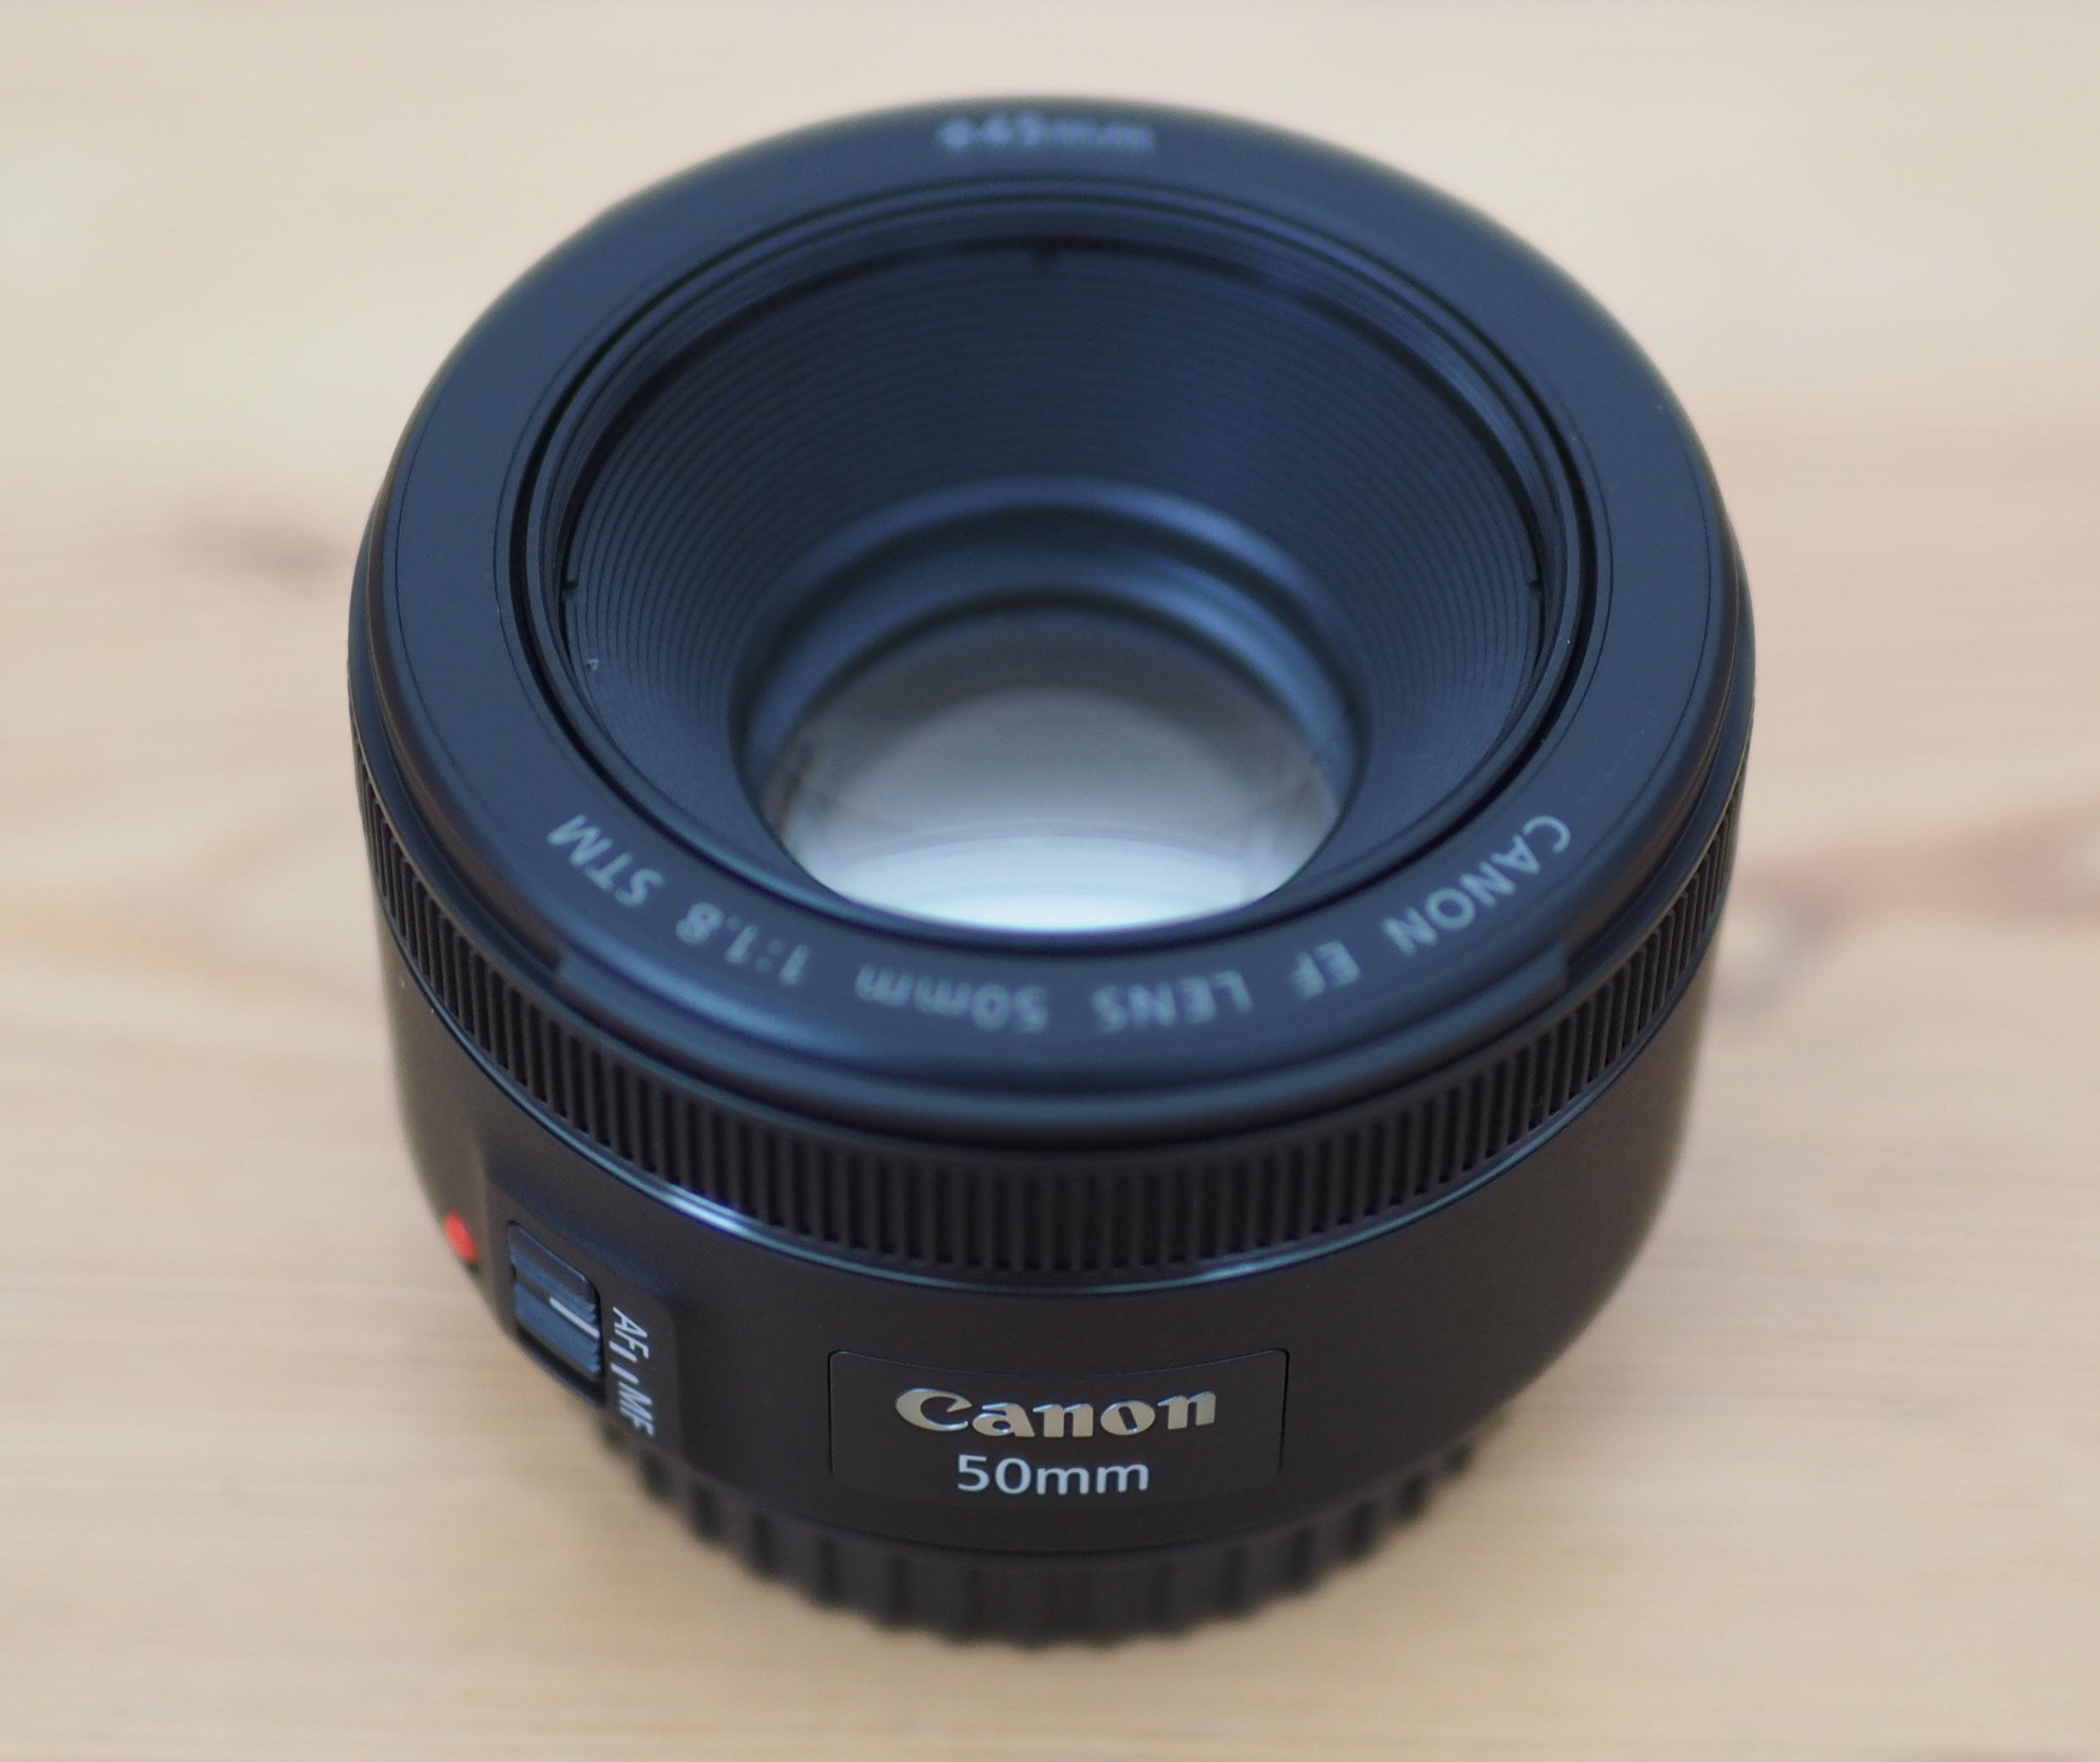 Canon EF 50mm f1.8 STM review - In depth of 5